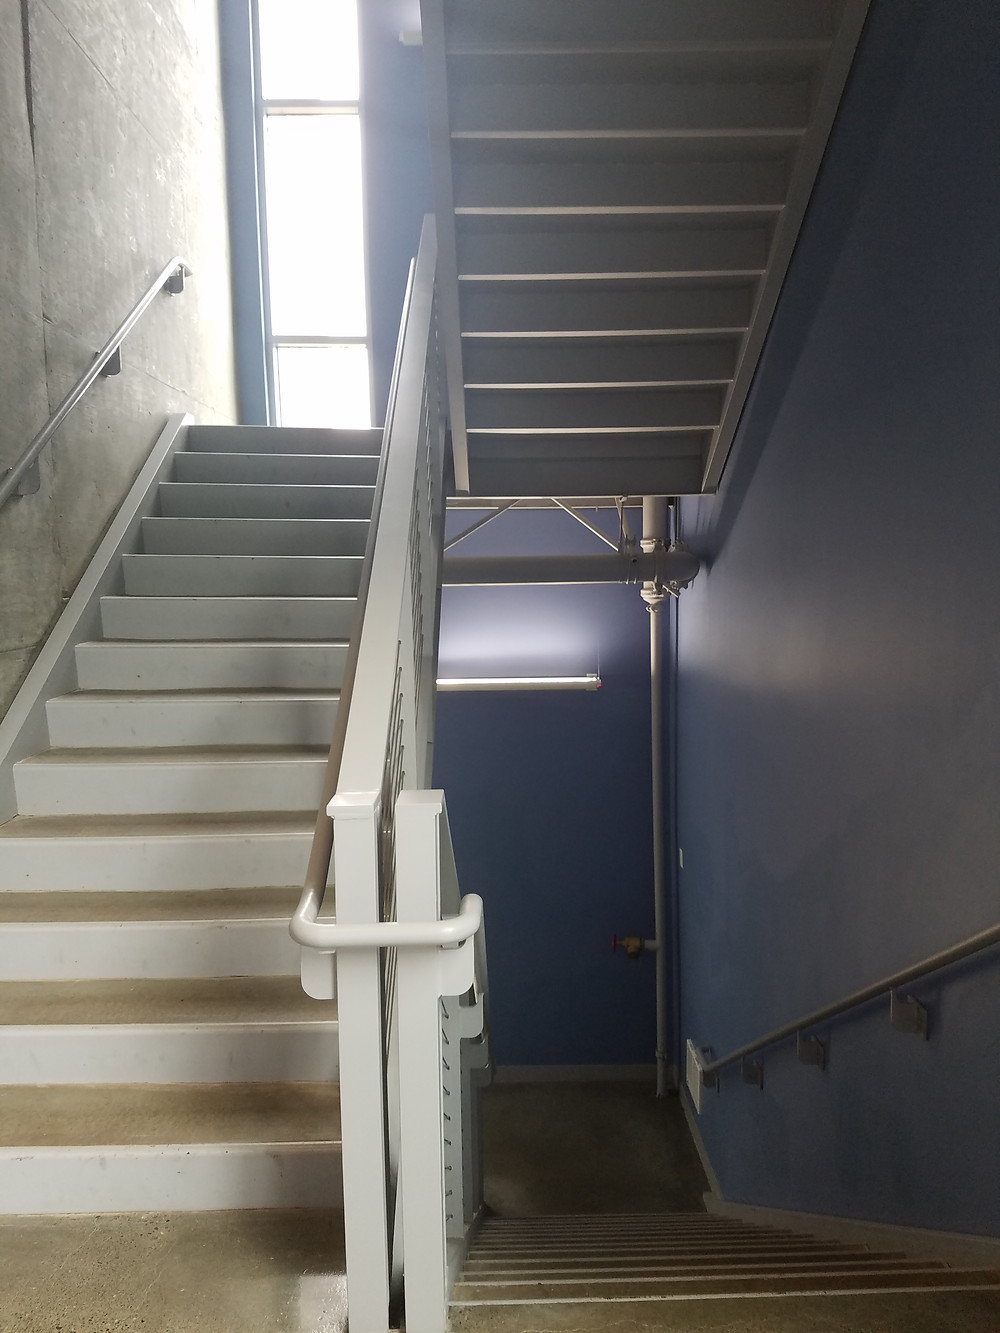 The least-used stairwell in the 2000 building